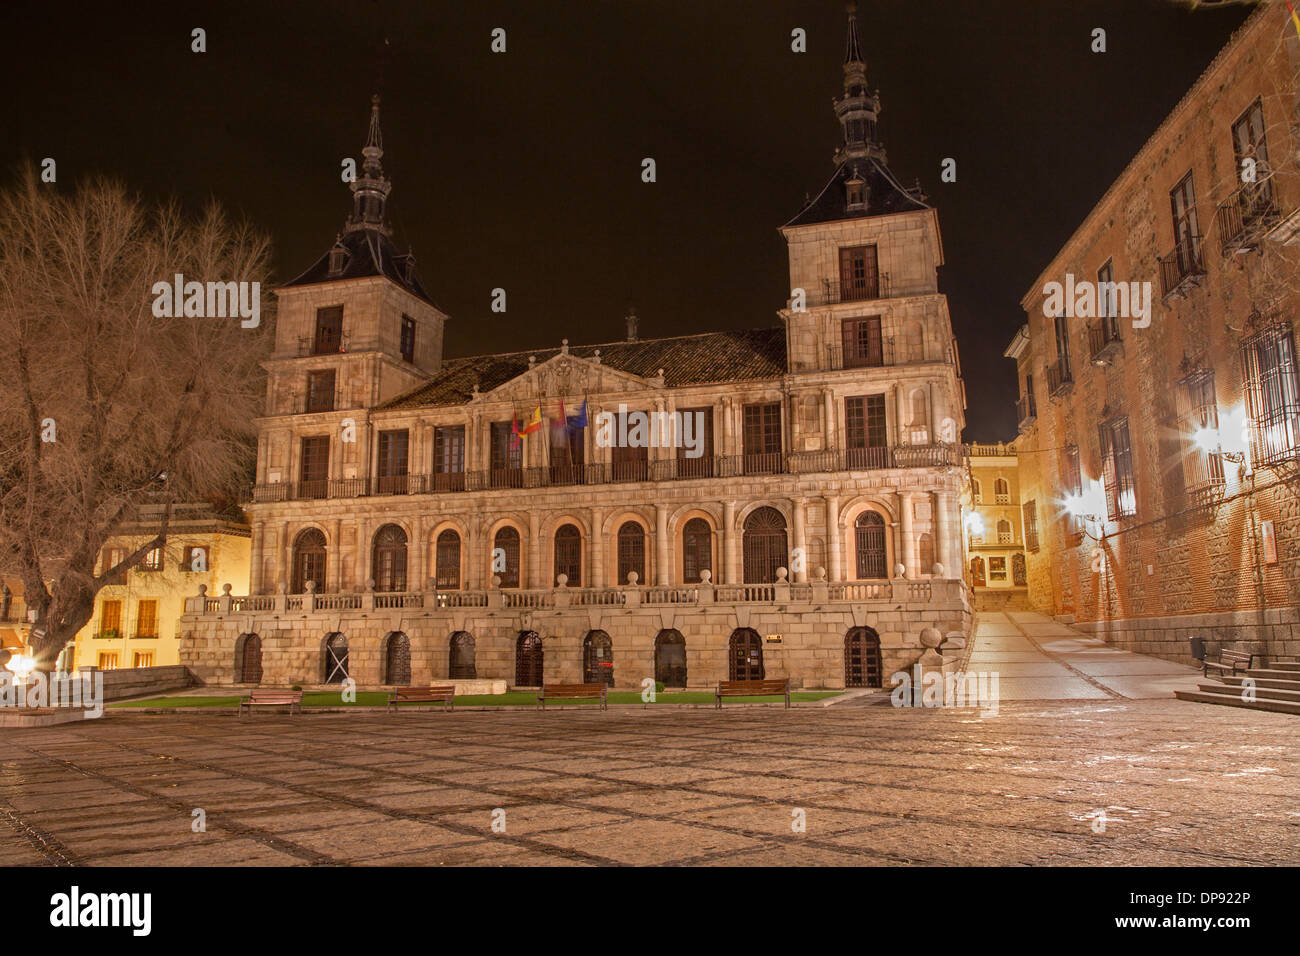 Toledo - town hall at night - Stock Image